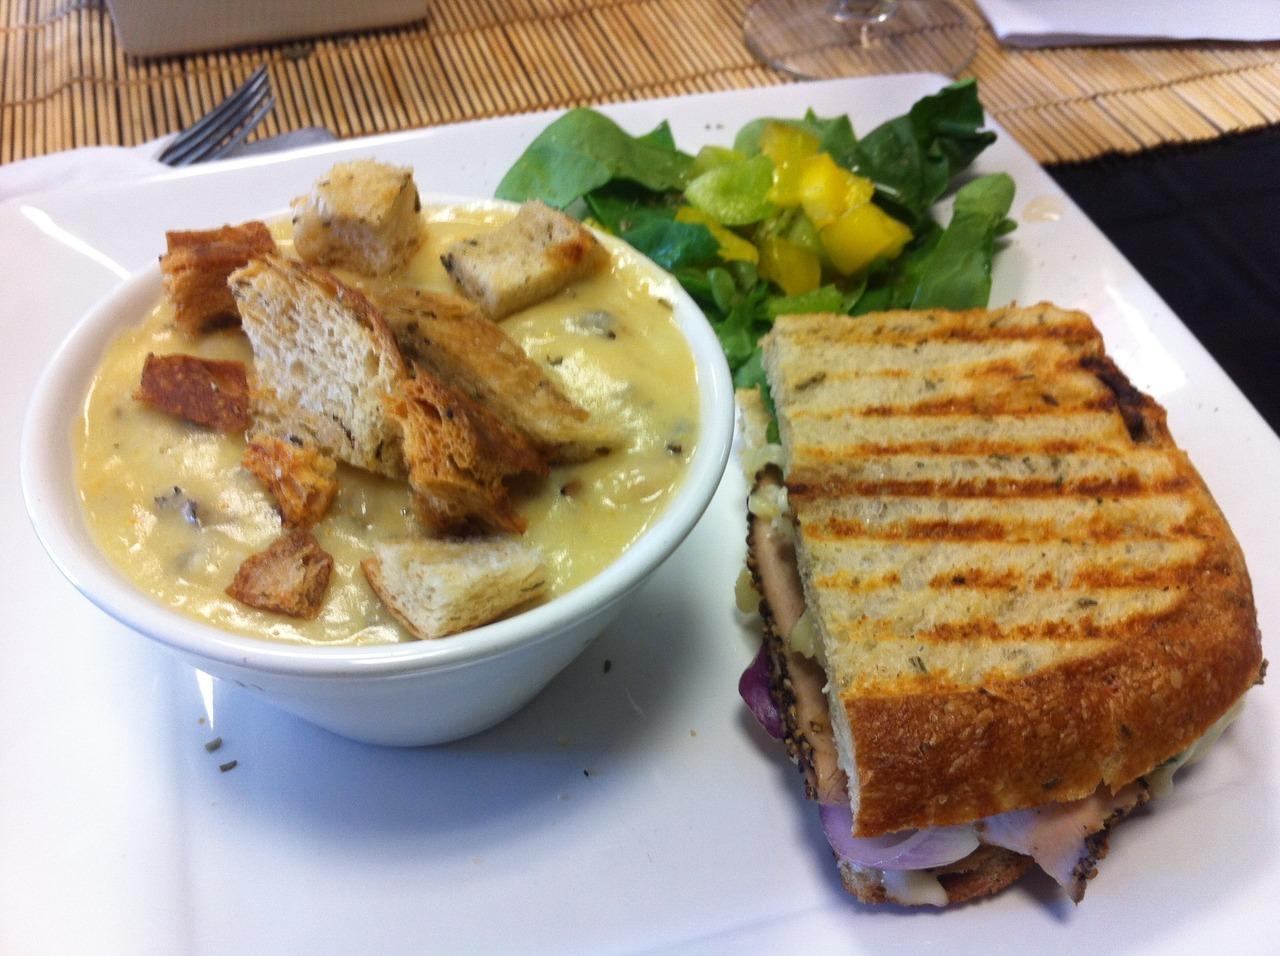 Tuscan Turkey Sandwich with soup